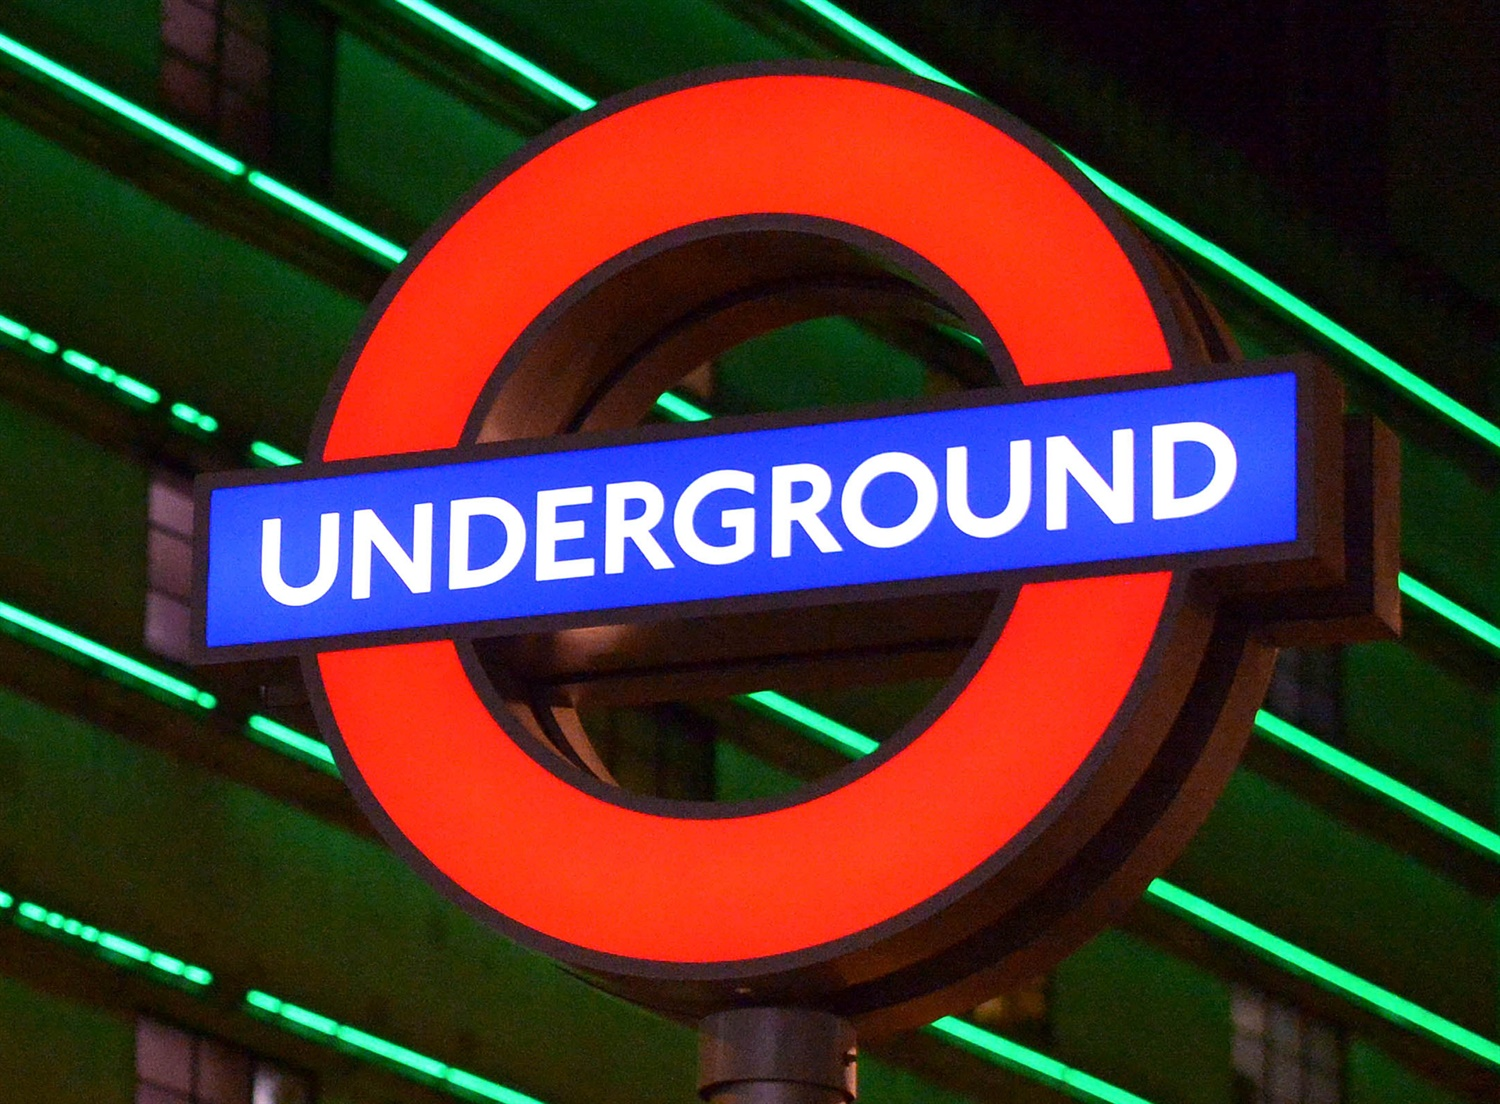 TfL shelves plans for Tube upgrades as financial woes revealed